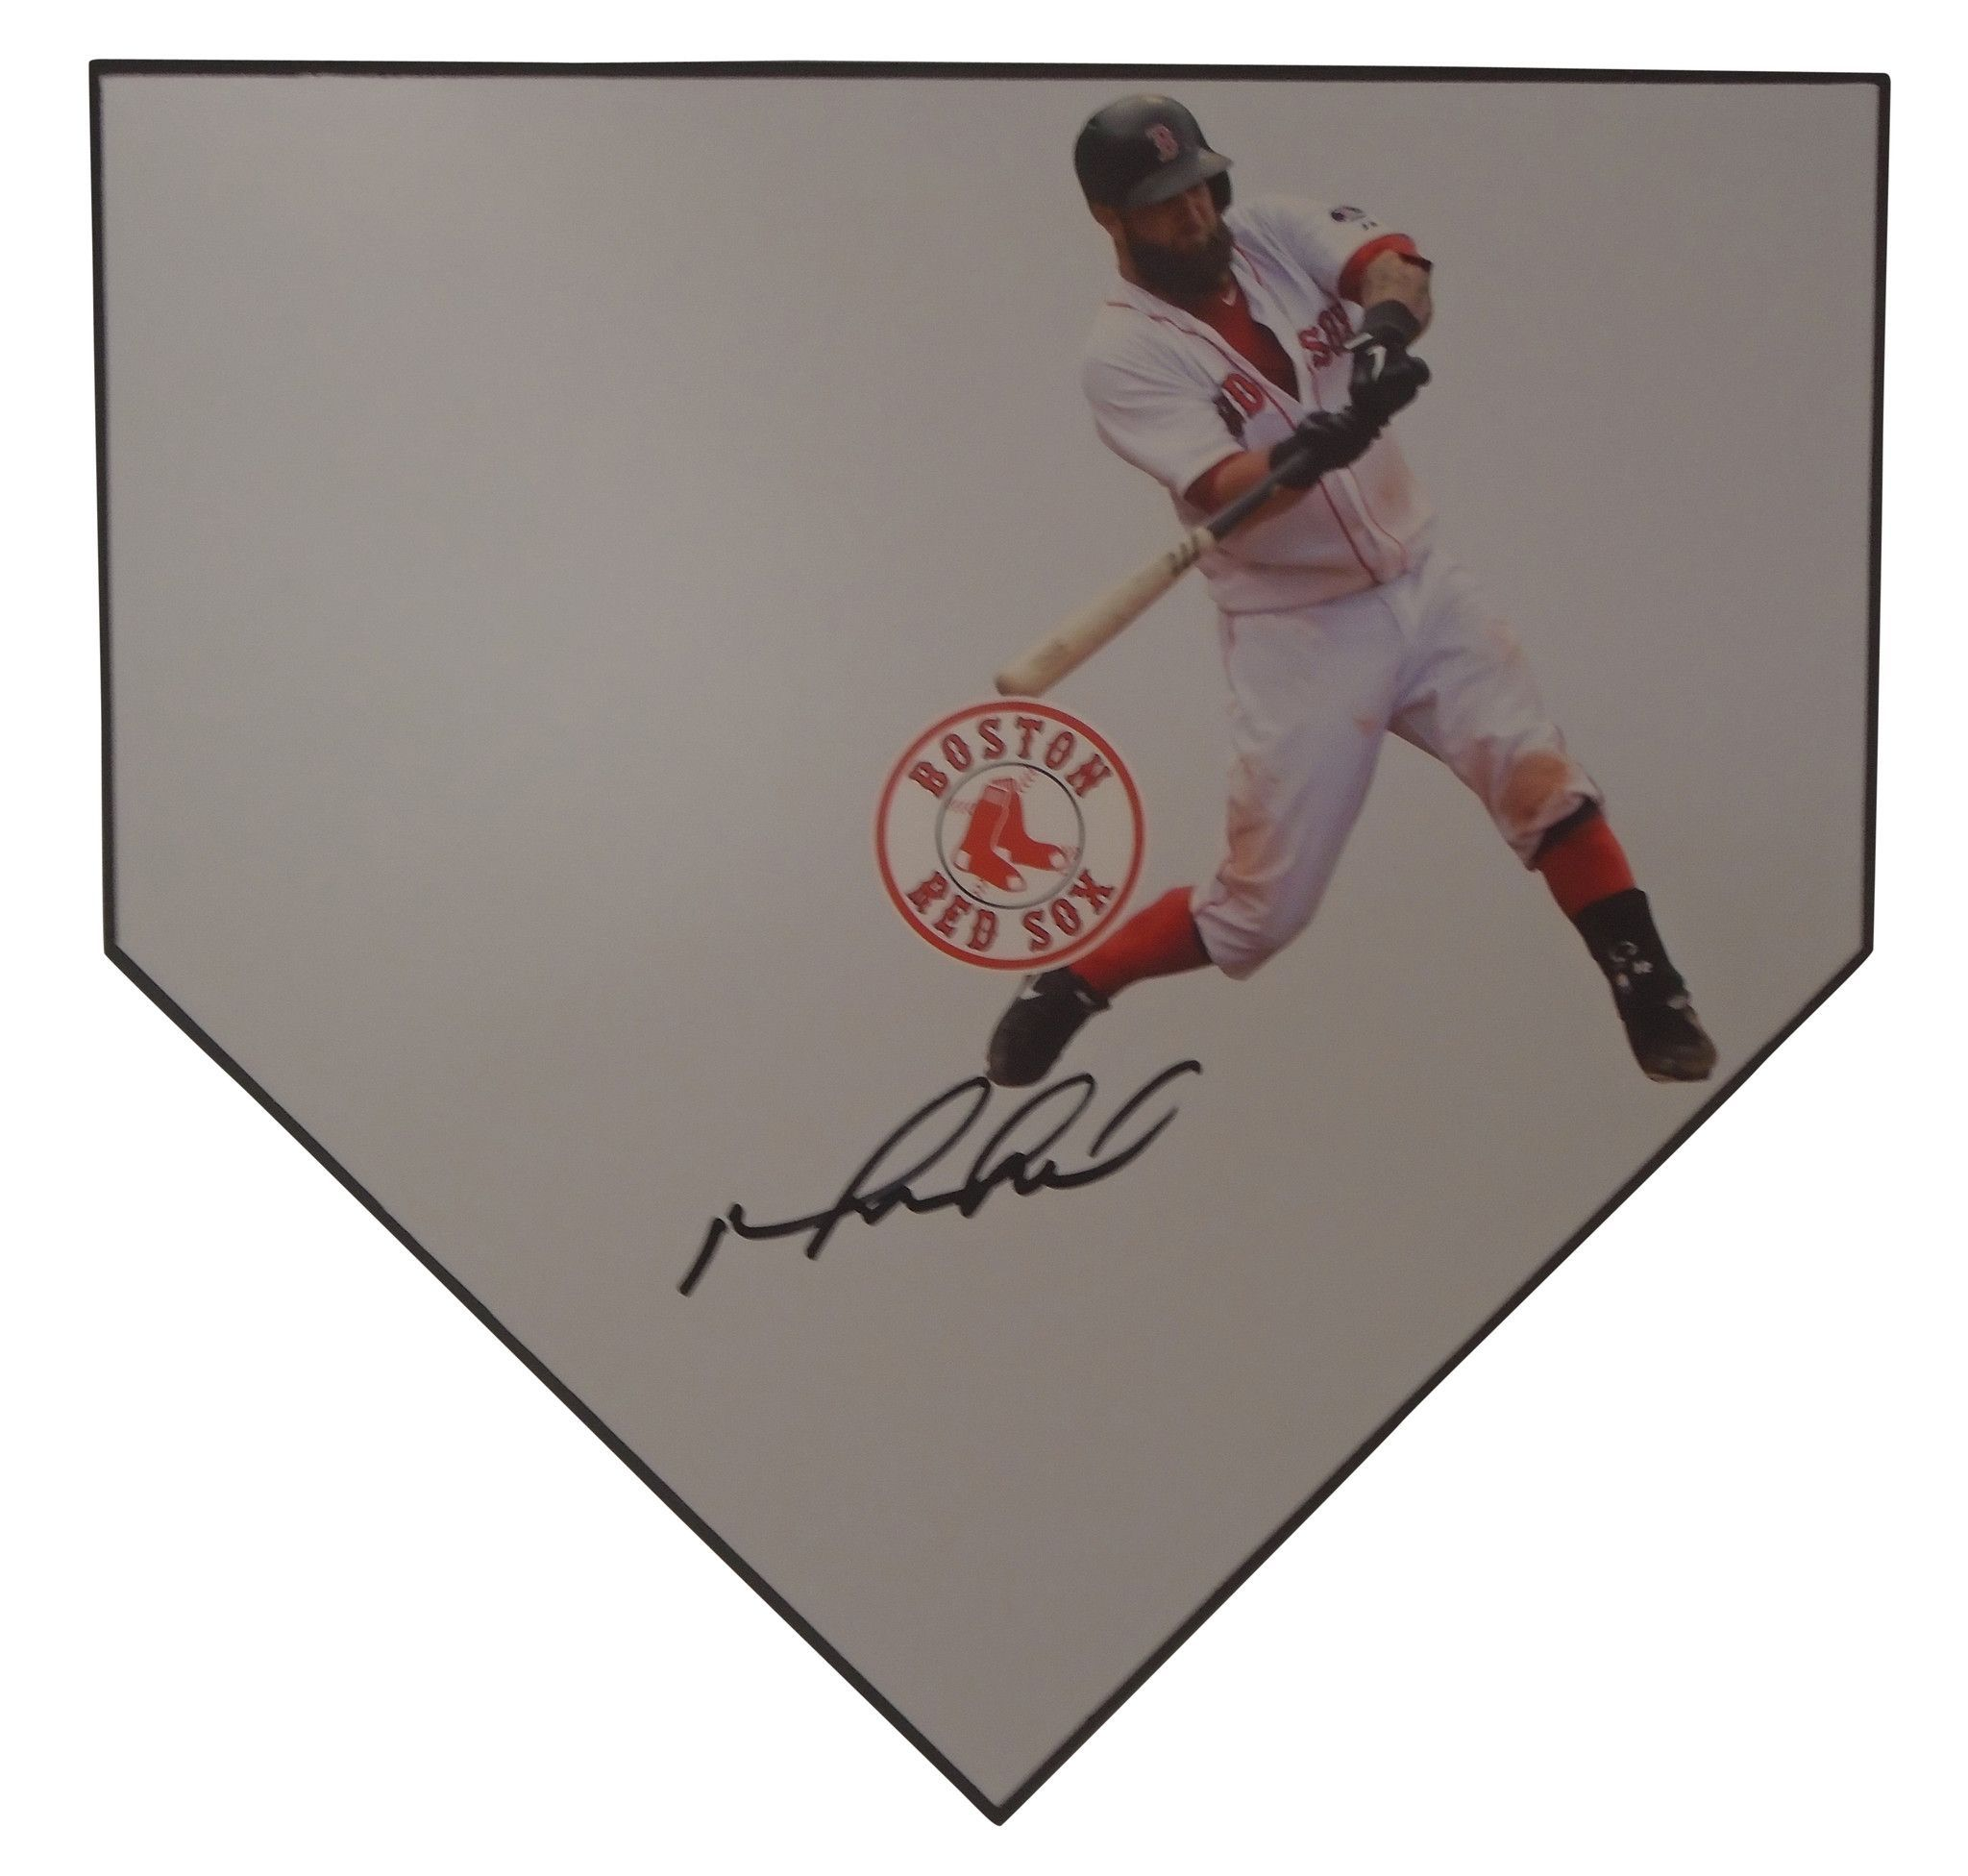 Boston Red Sox Mike Napoli signed Home Plate w/ proof photo.  Proof photo of Mike signing the base, will be included with your purchase along with a COA issued from Southwestconnection-Memorabilia, guaranteeing the item to pass authentication services from PSA/DNA or JSA. Free USPS shipping. www.AutographedwithProof.com is your one stop for autographed collectibles from Boston sports teams. Check back with us often, as we are always obtaining new items.